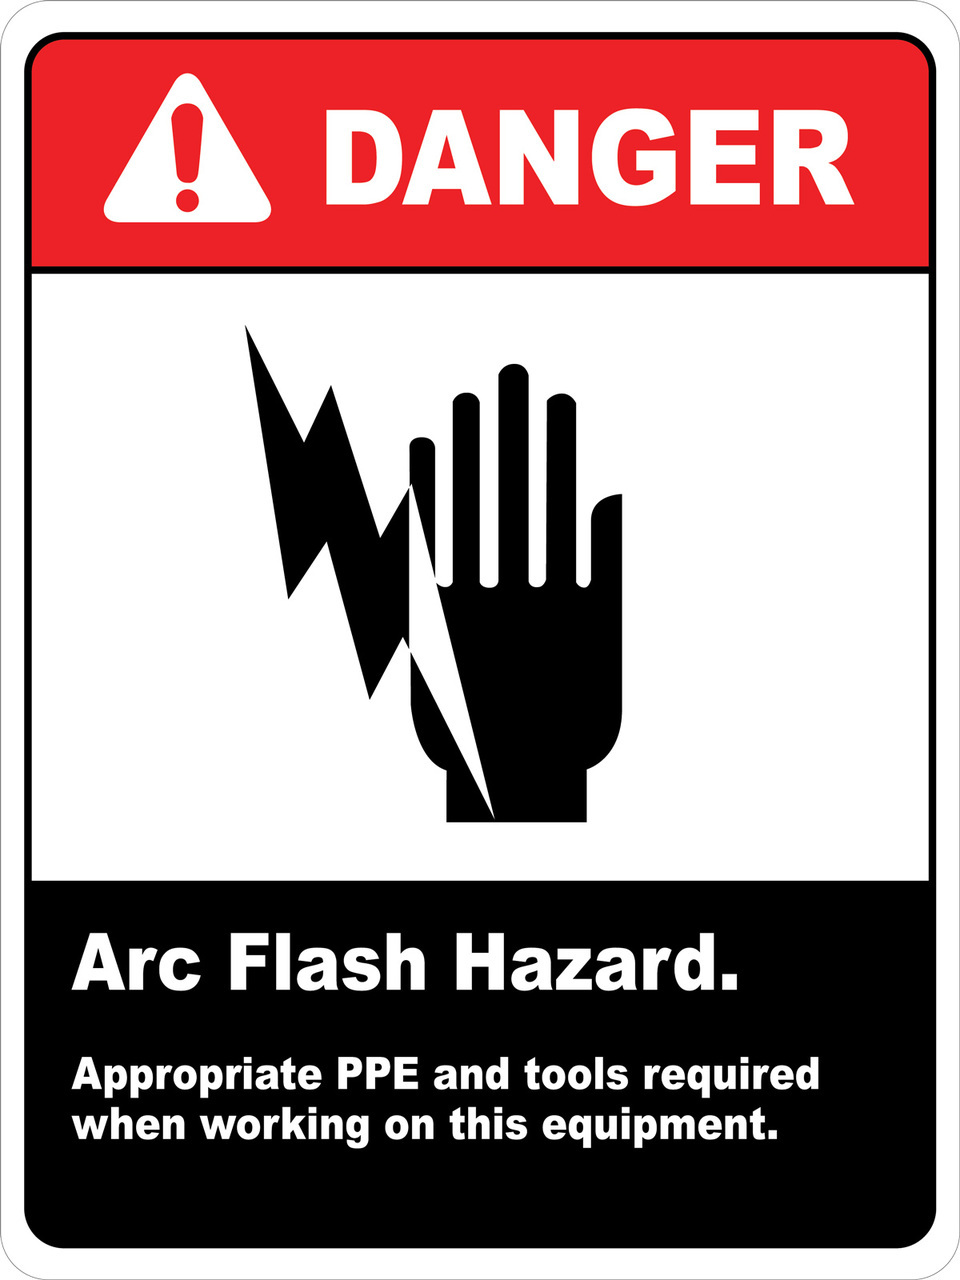 Danger Arc Flash Hazard Ppe Required Wall Sign Phs Safety